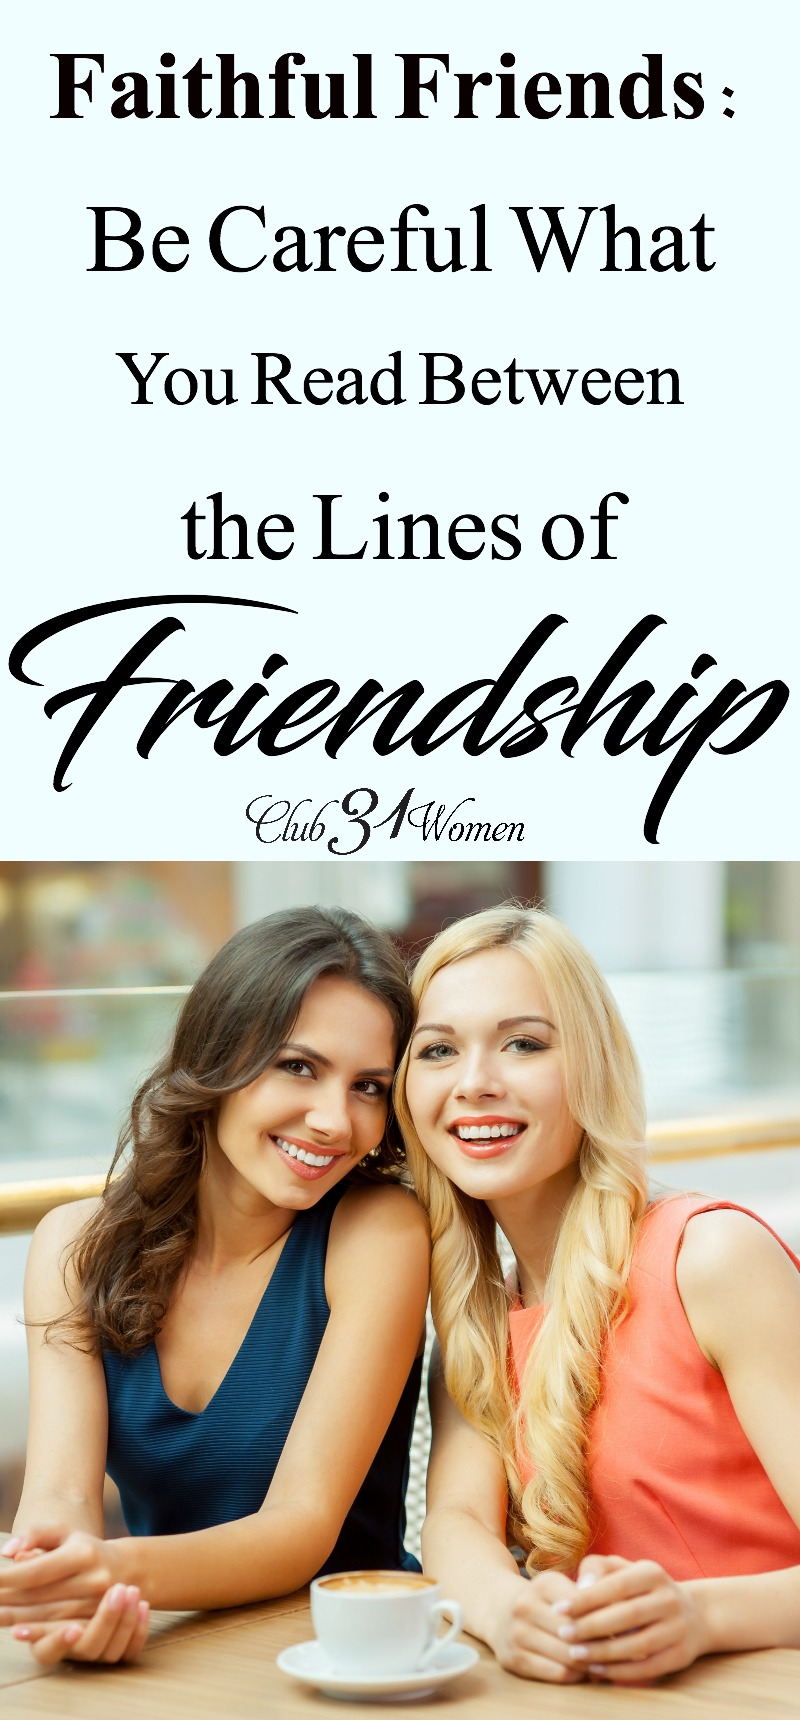 Ever struggle in your friendships? Not sure what's going on or wonder if there's something wrong? Here is wise and encouraging advice on healthy friendship! via @Club31Women